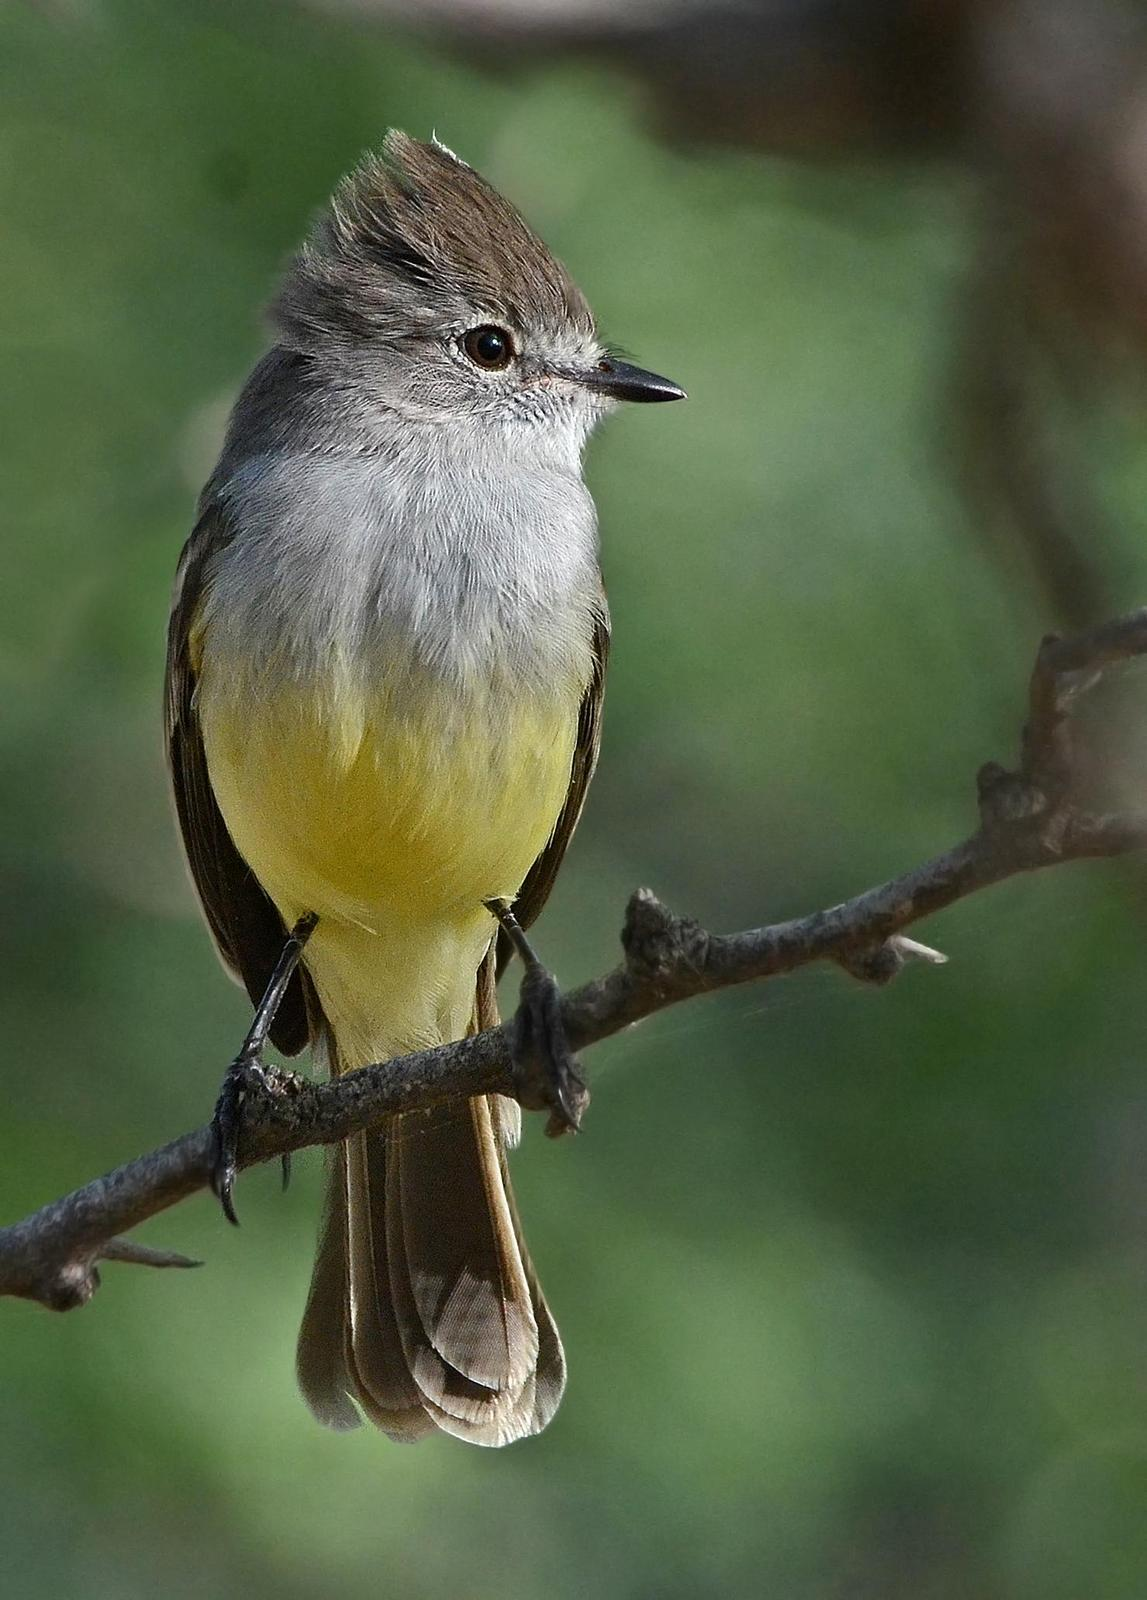 Northern Scrub-Flycatcher Photo by Steven Mlodinow